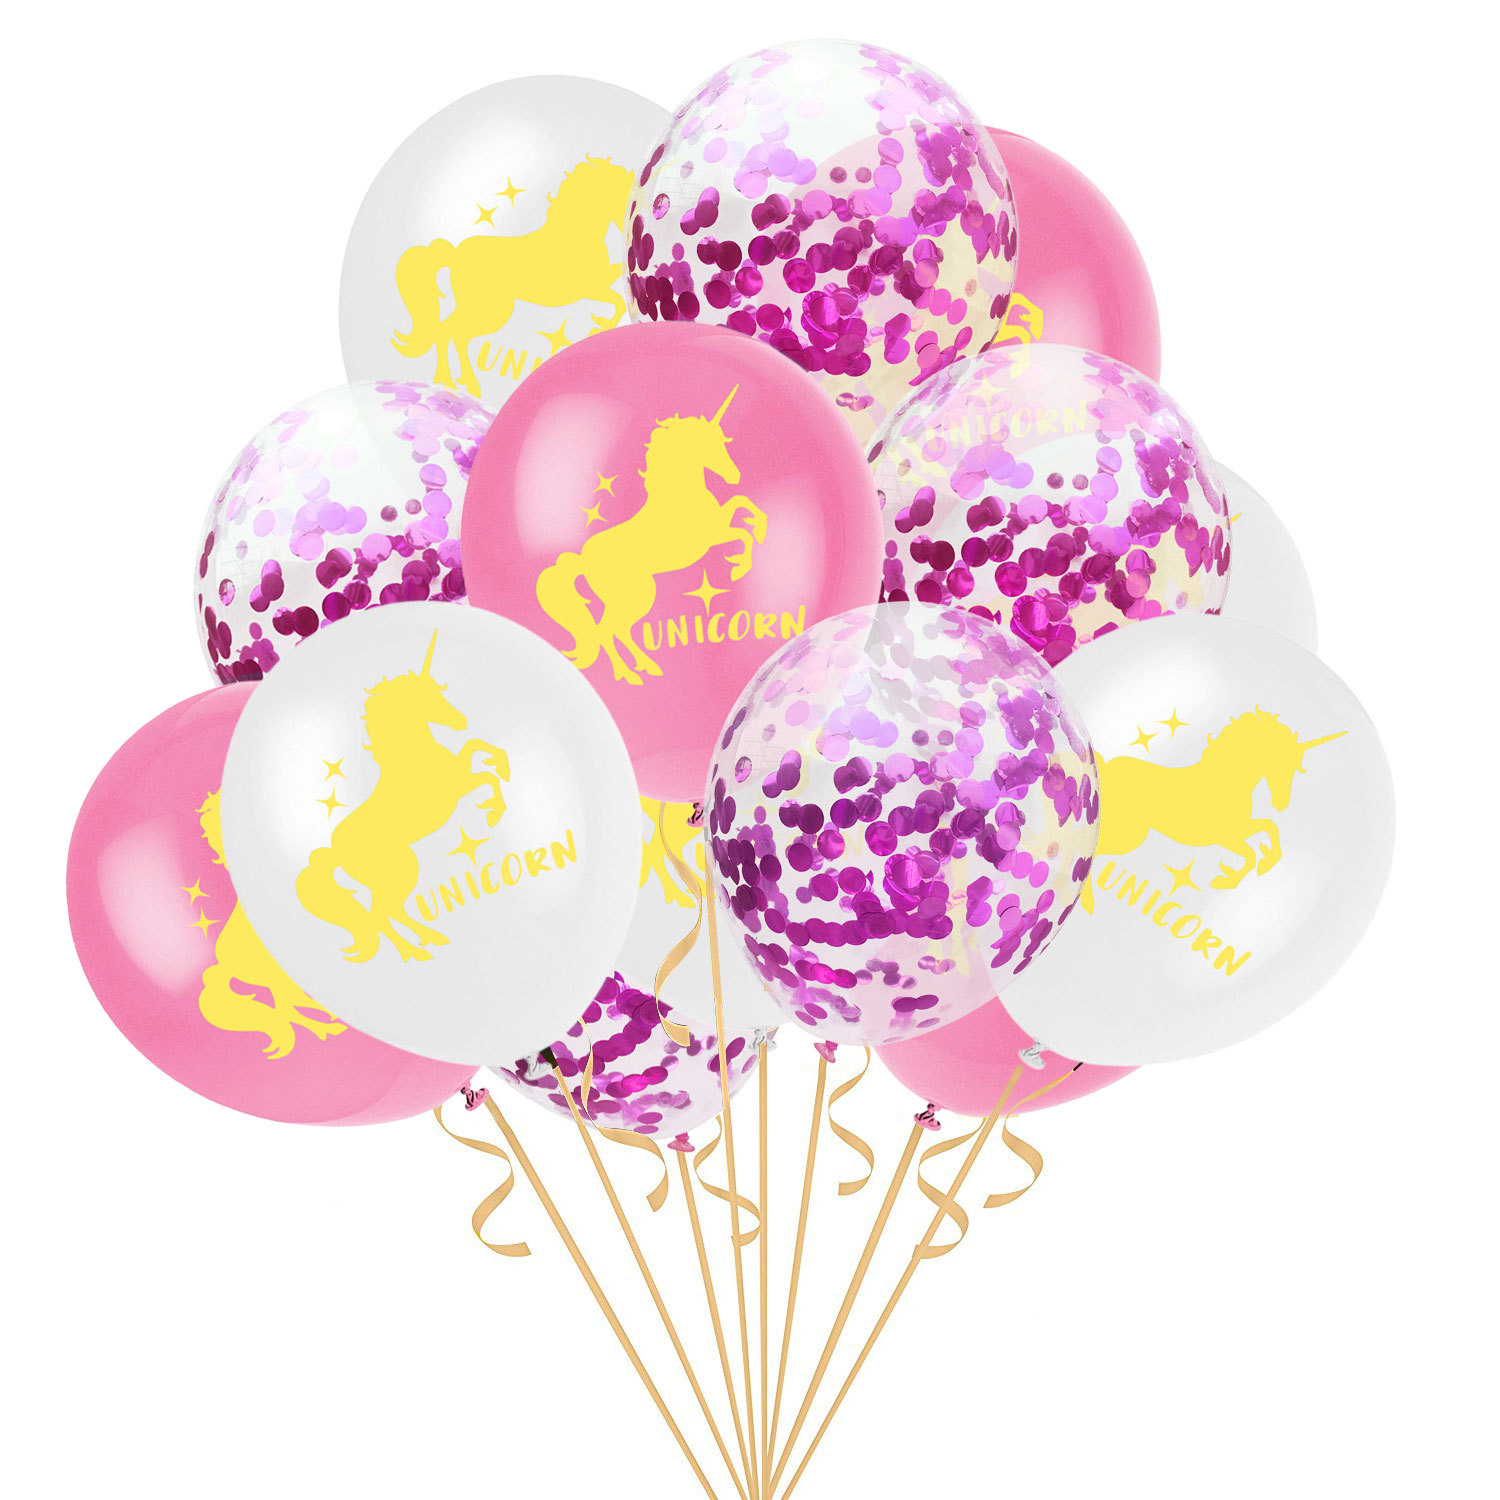 15pc12inch Unicorn Party Birthday Mermaid Party Decorations Latex Confetti Balloon Kids Mermaid Birthday Decorartion Baby Shower in Party DIY Decorations from Home Garden